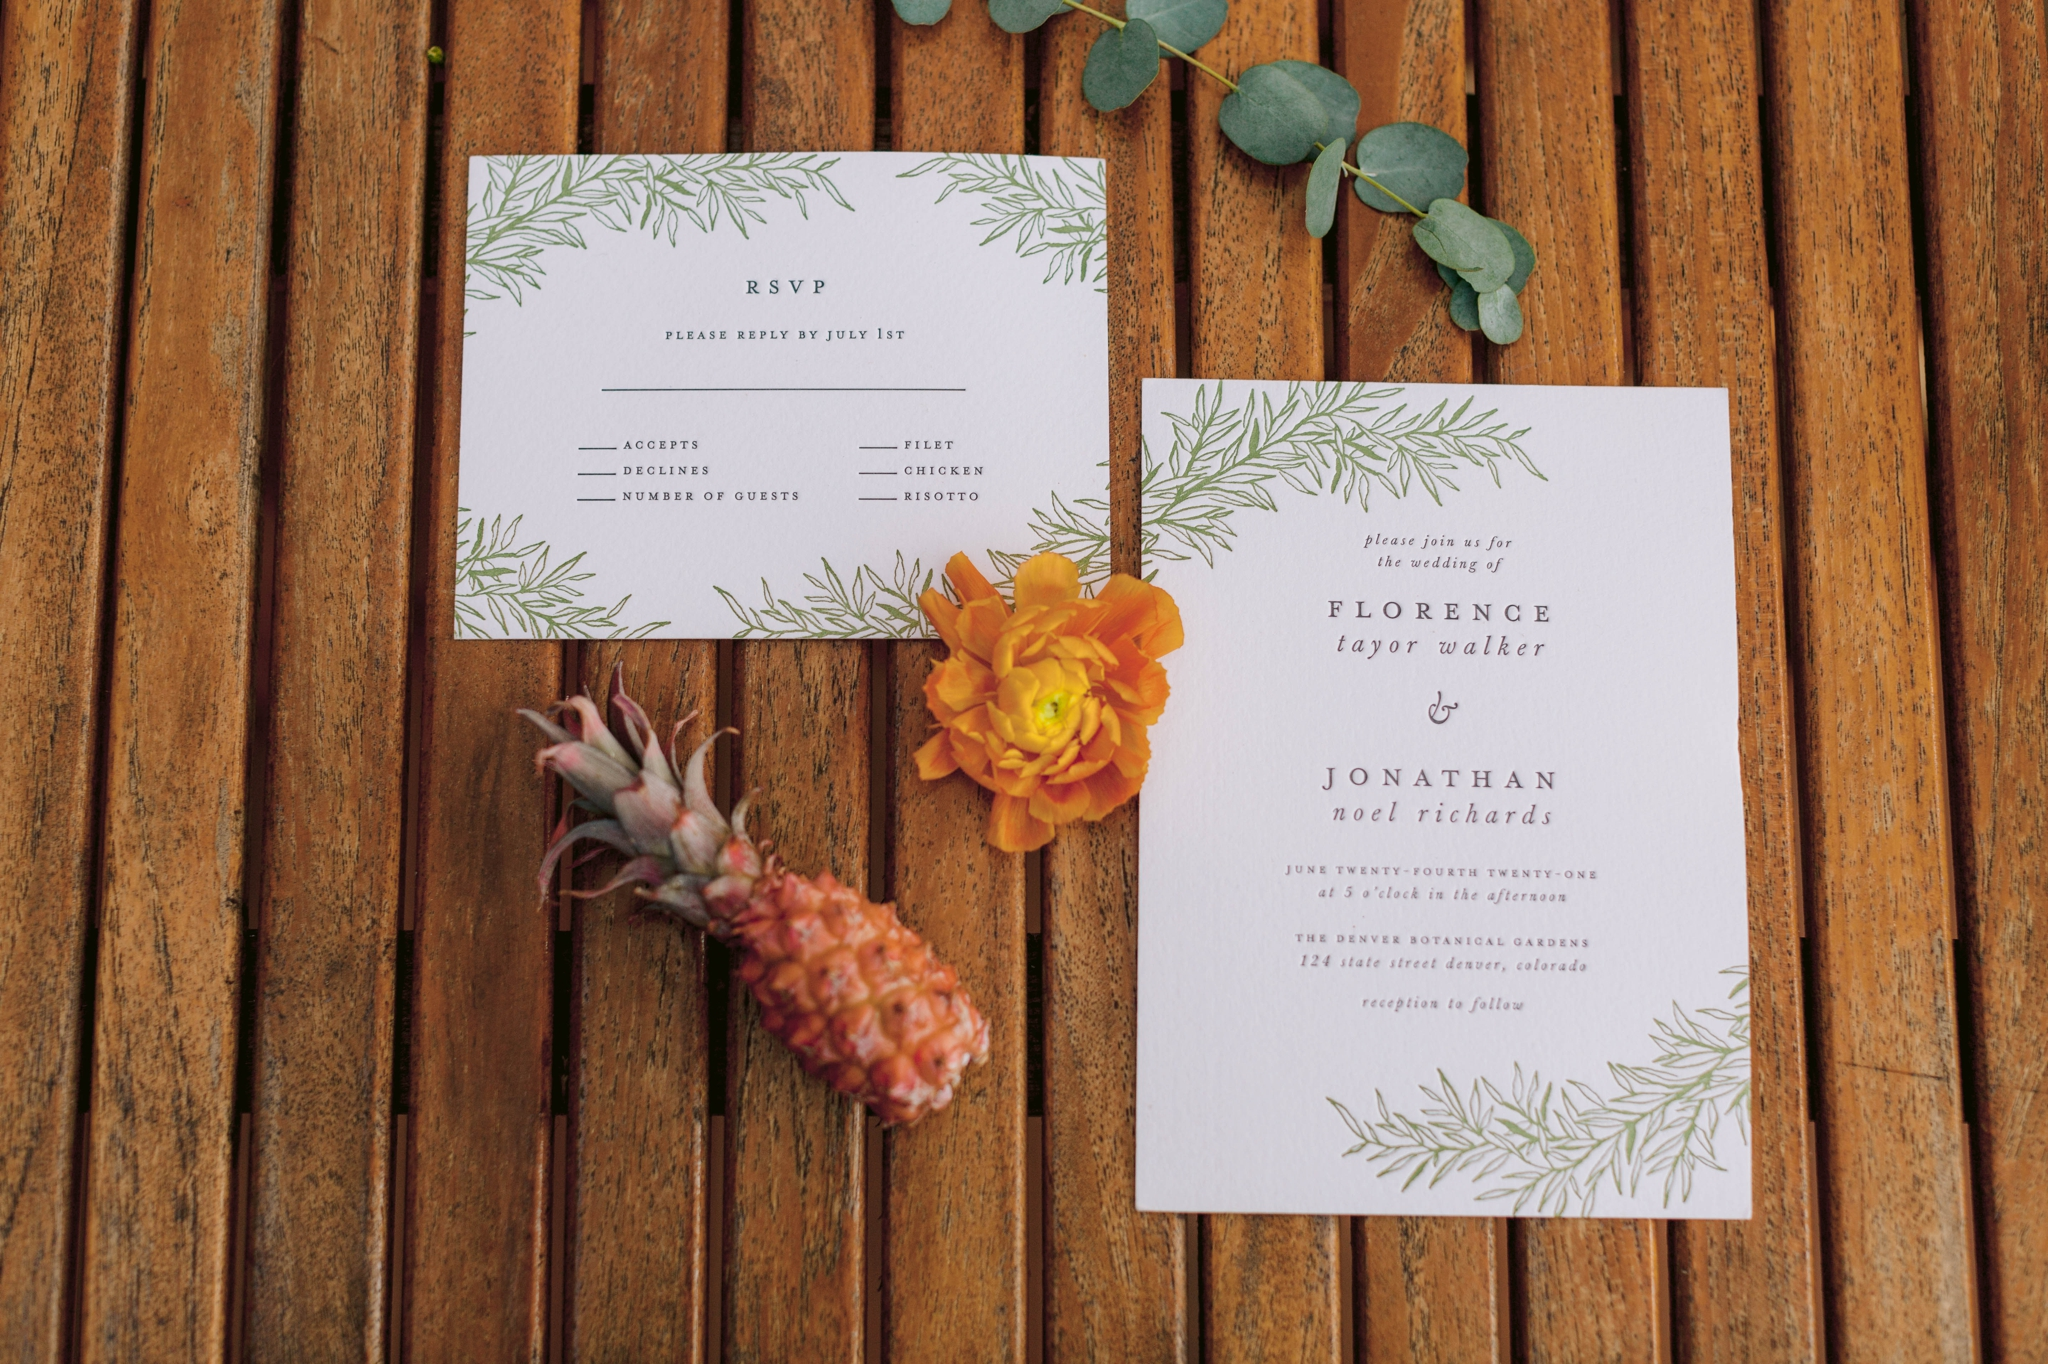 Invitation Suite - Ana + Elijah - Wedding at Loulu Palm in Haleiwa, HI - Oahu Hawaii Wedding Photographer - #hawaiiweddingphotographer #oahuweddings #hawaiiweddings